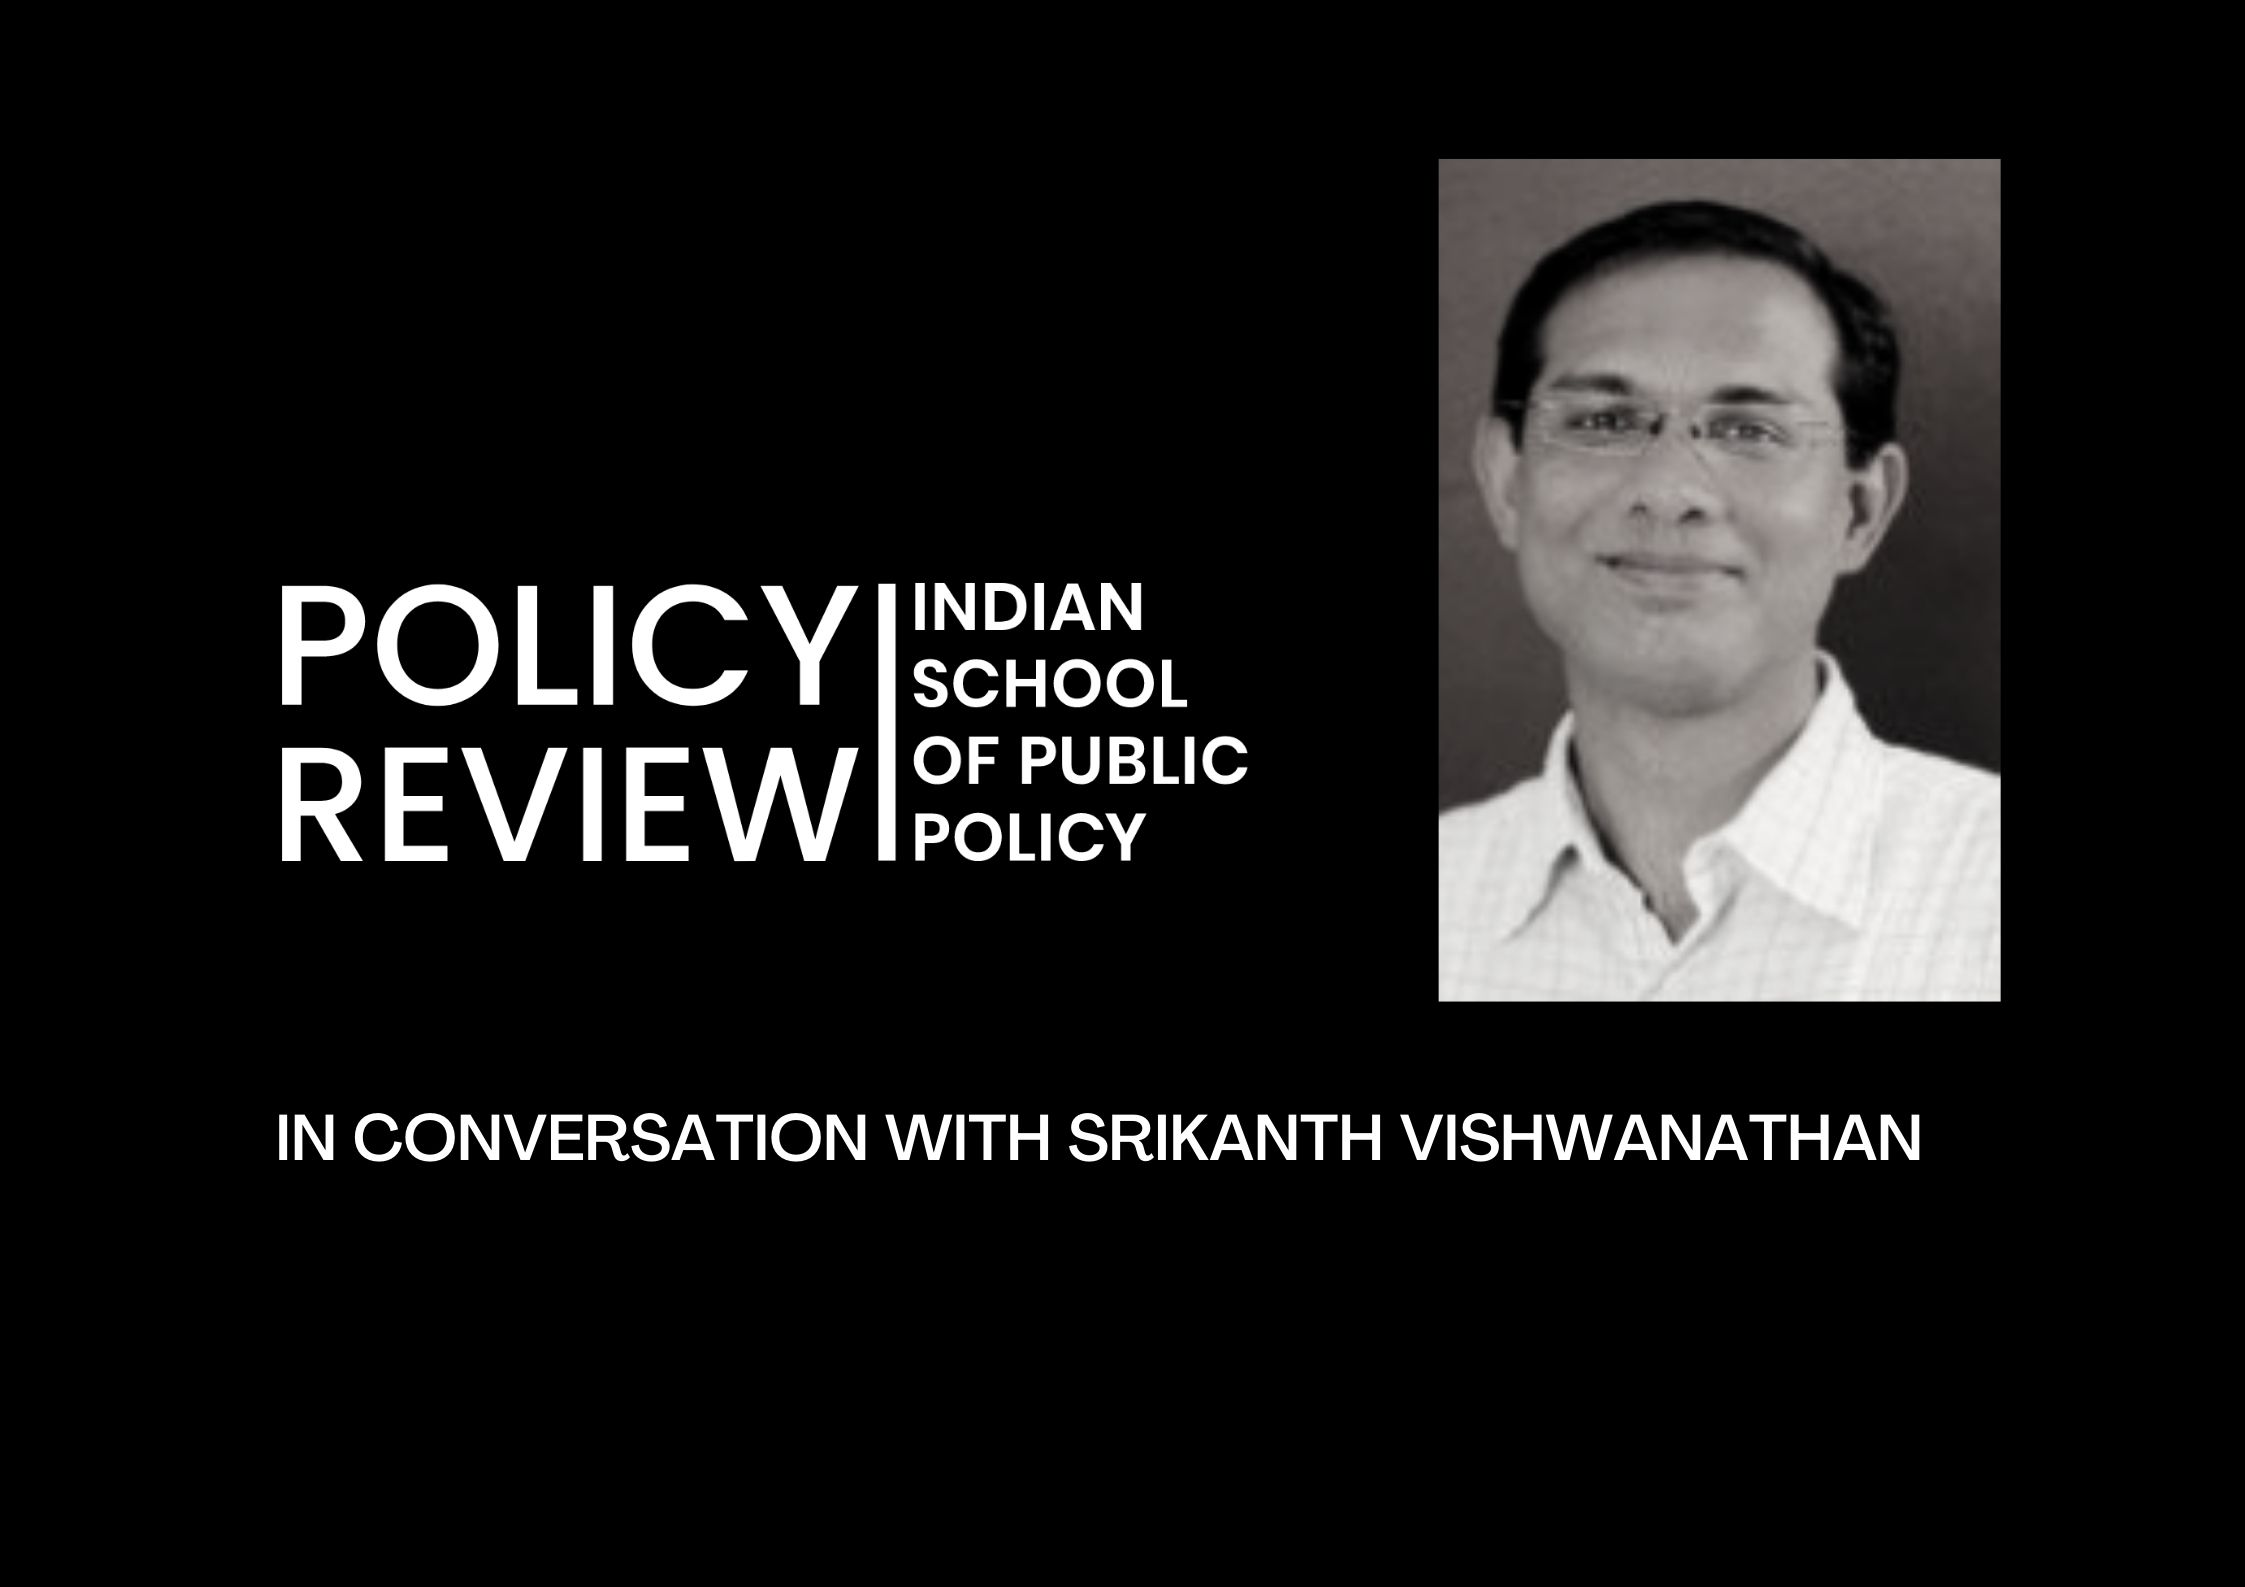 In conversation with Srikanth Viswanathan